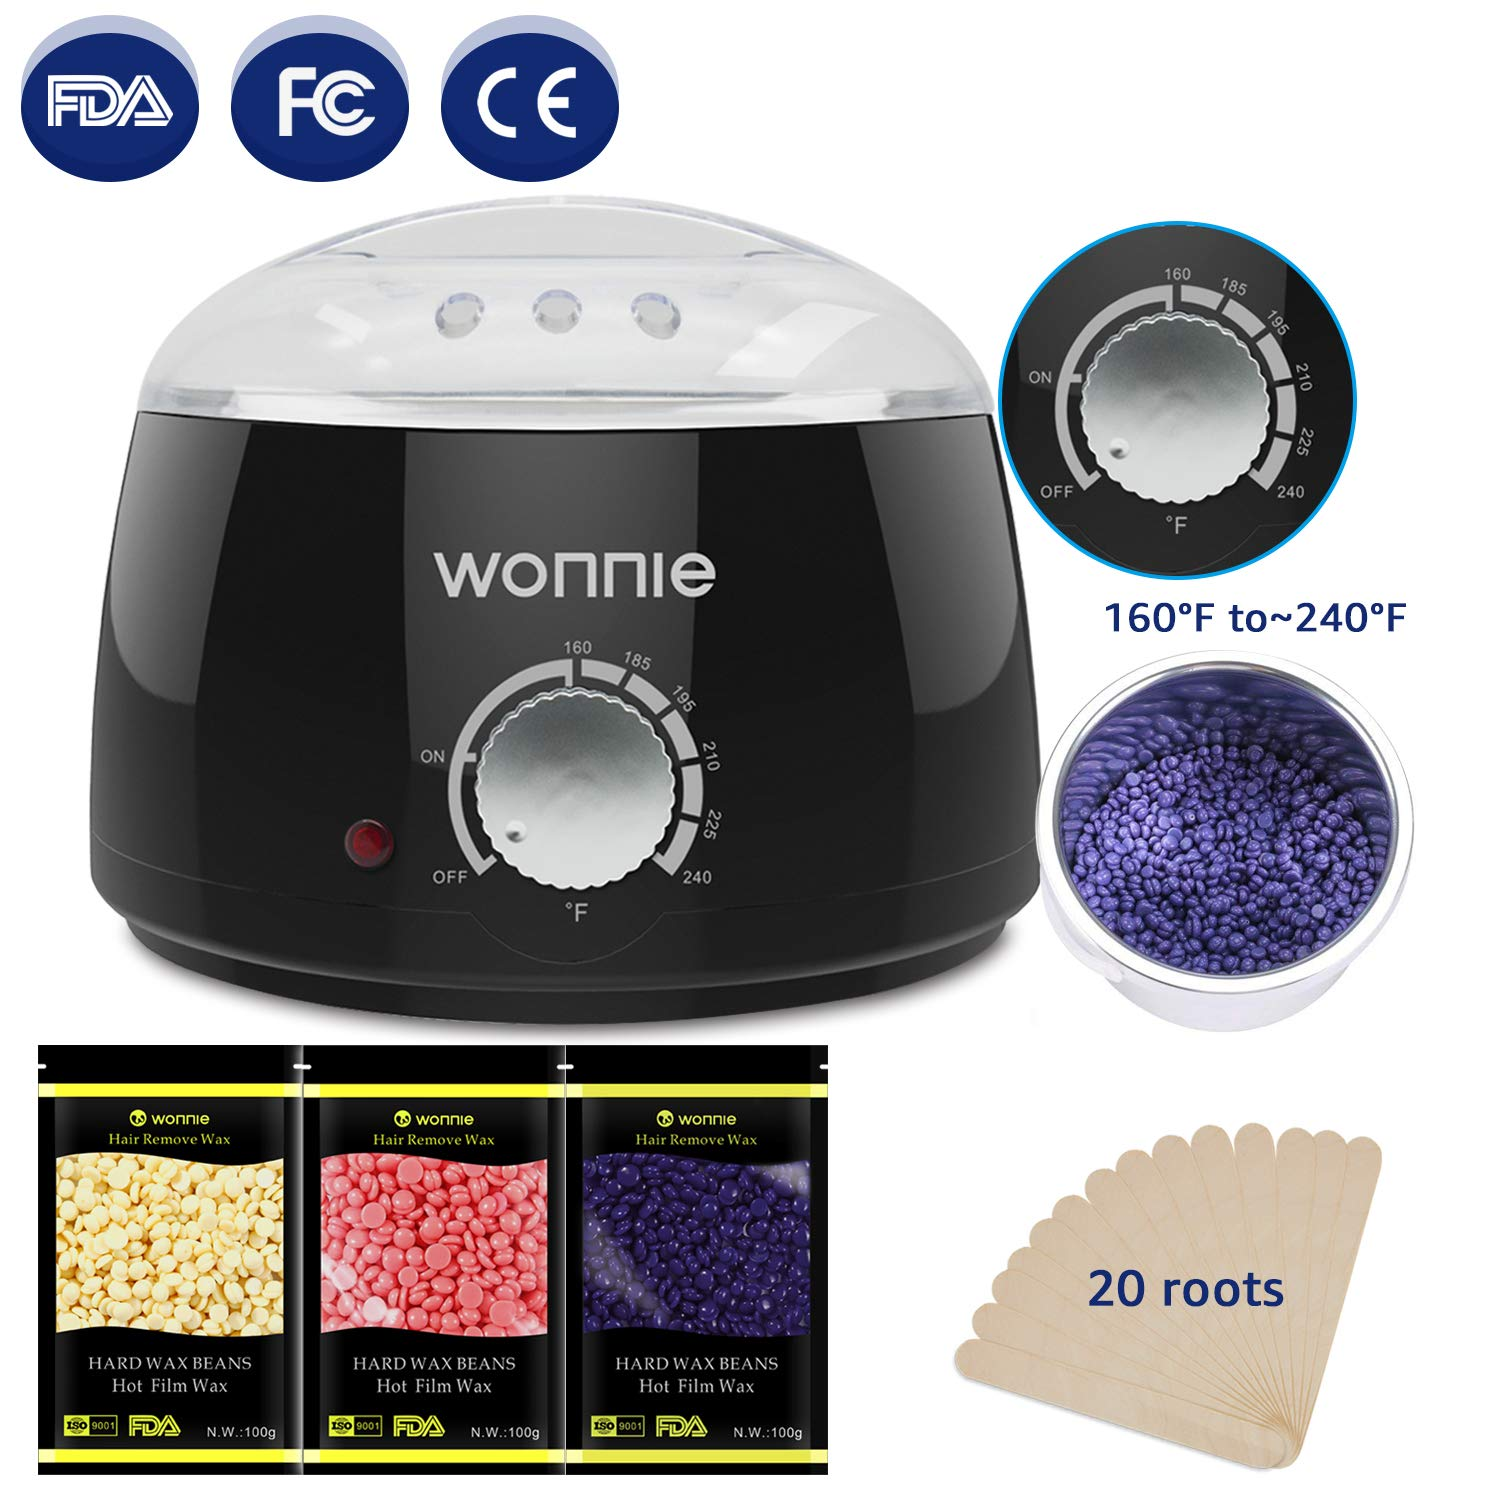 WONNIE New Upgrade Wax Warmer Hair Removal Home Waxing Kit Electric Pot Heater for Rapid Waxing of All Body, Face, Bikini Area, Legs with 3 Flavor Hard Wax Beans & 10 Wax Applicator Spatulas